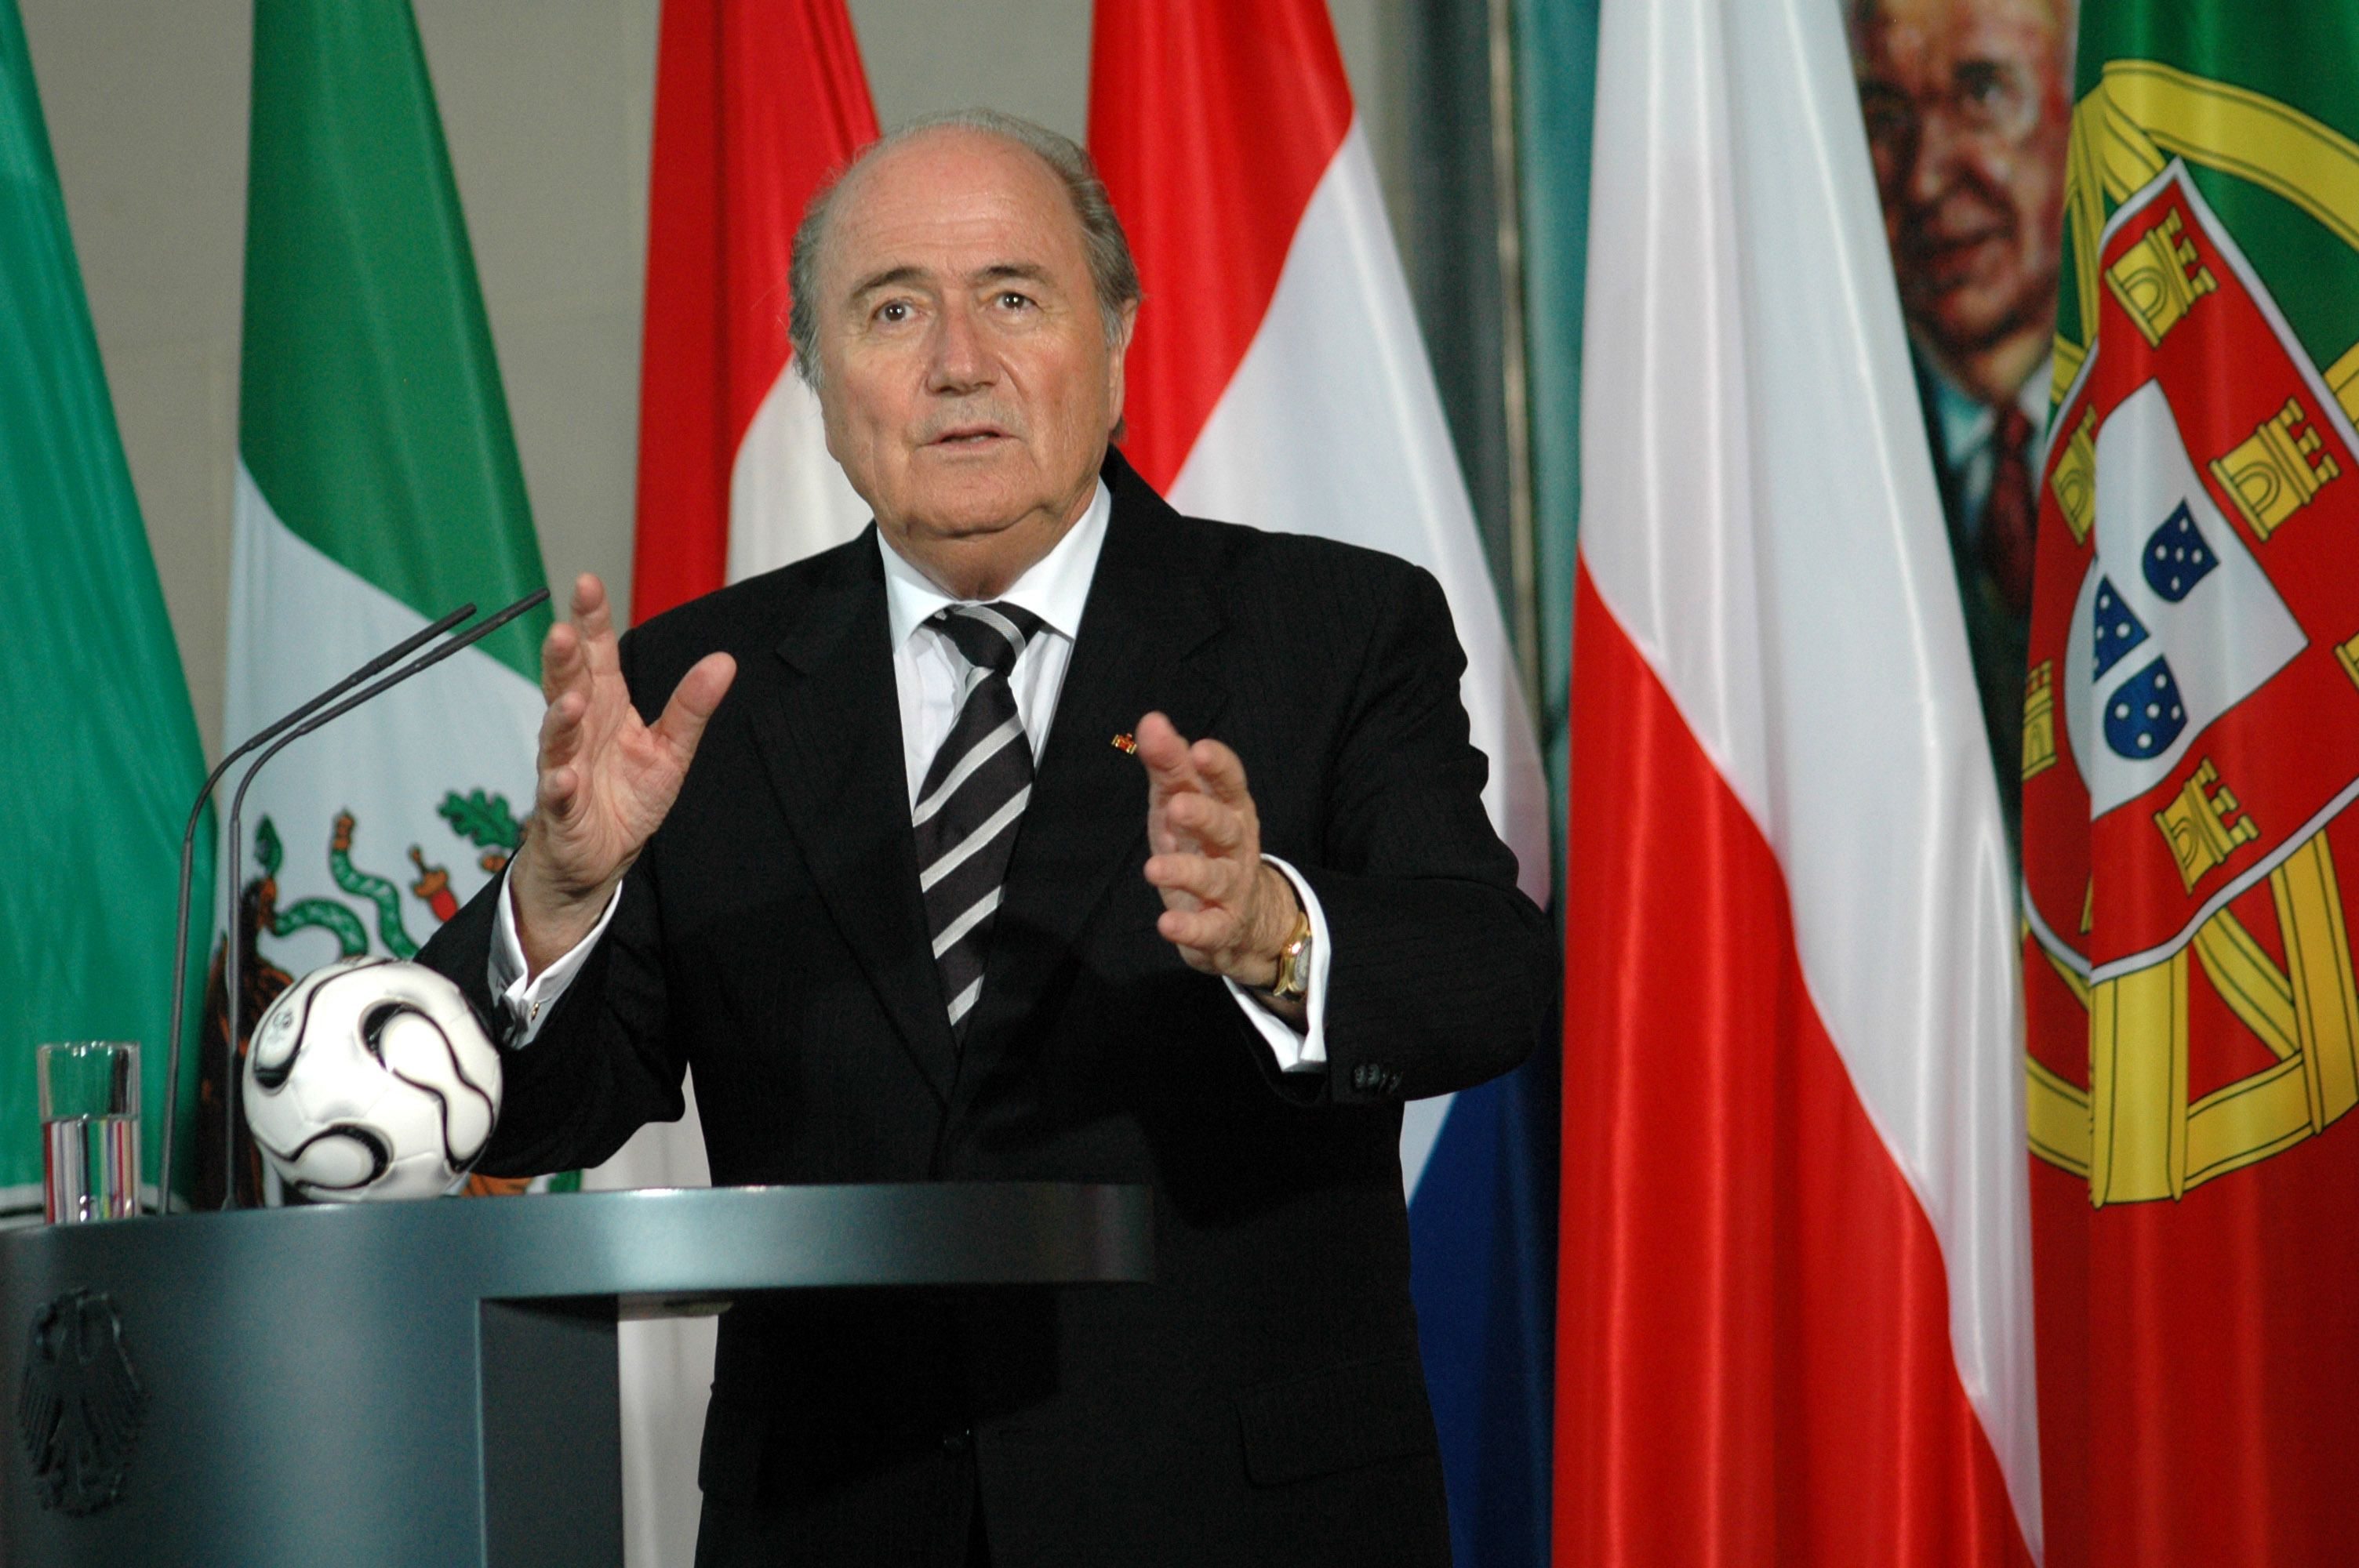 7. Sepp Blatter on Women's Football